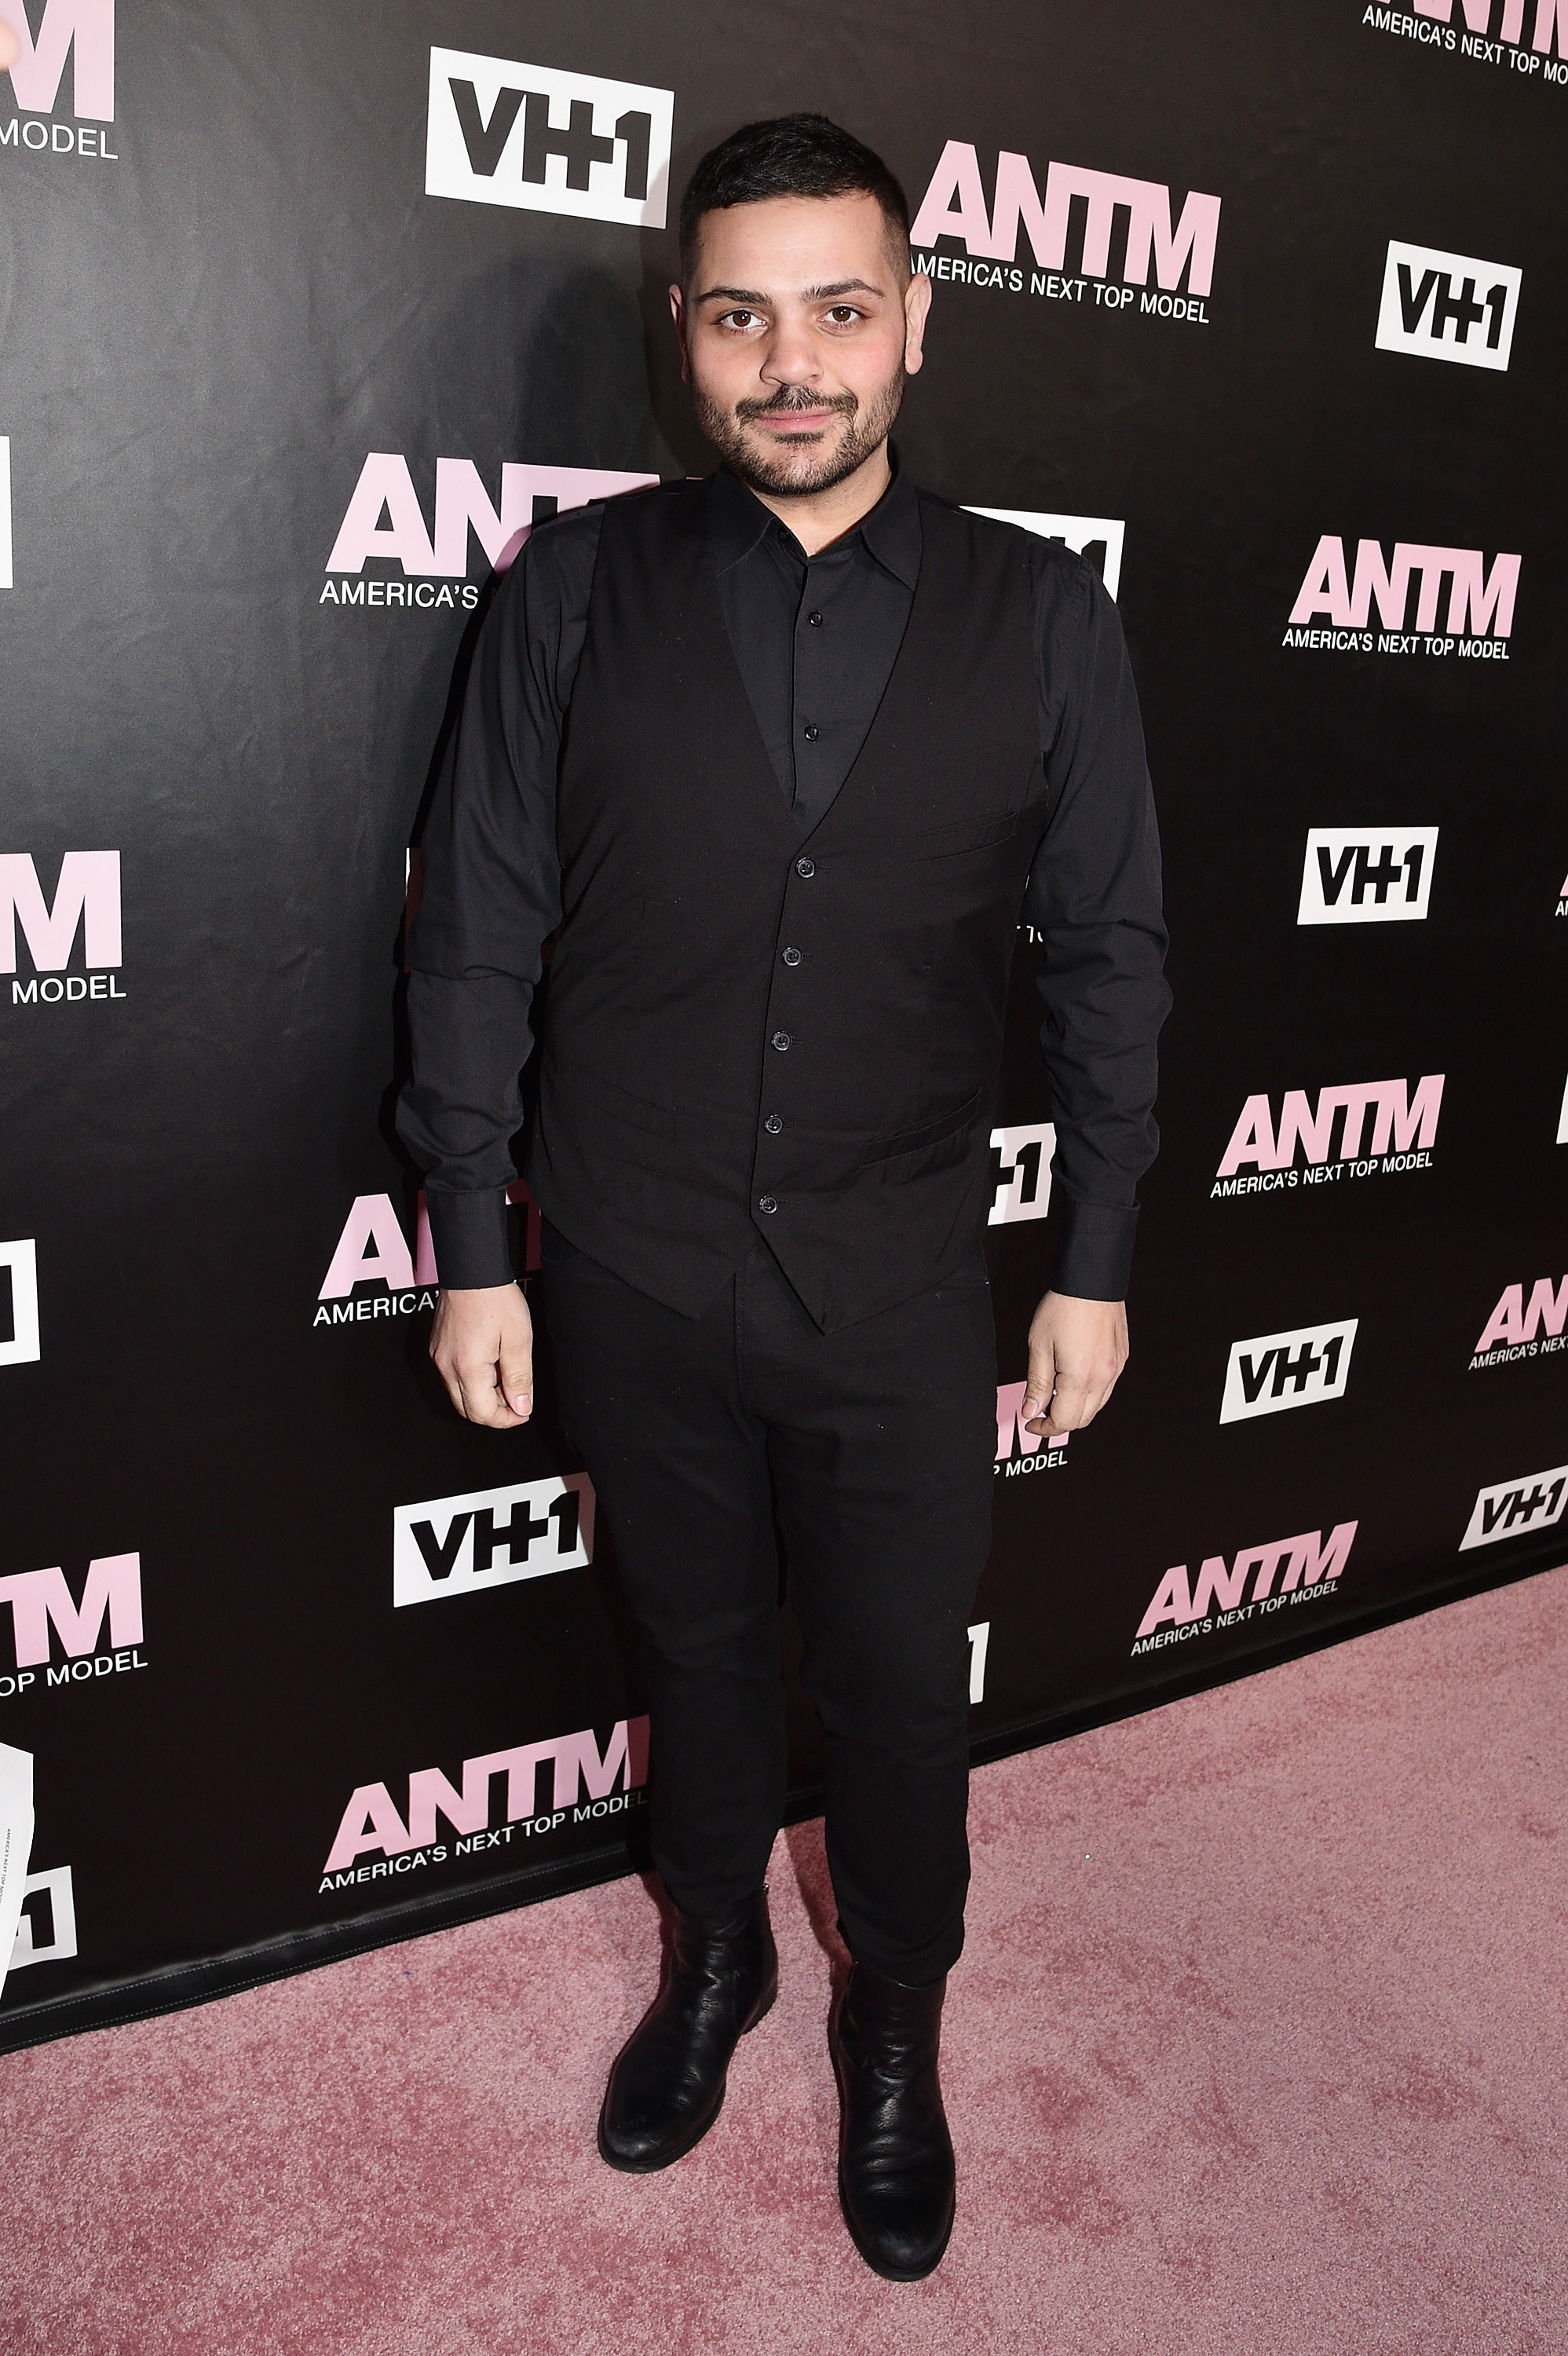 Fashion designer Michael Costello attends the VH1 America's Next Top Model premiere party at Vandal on December 8, 2016 in New York City